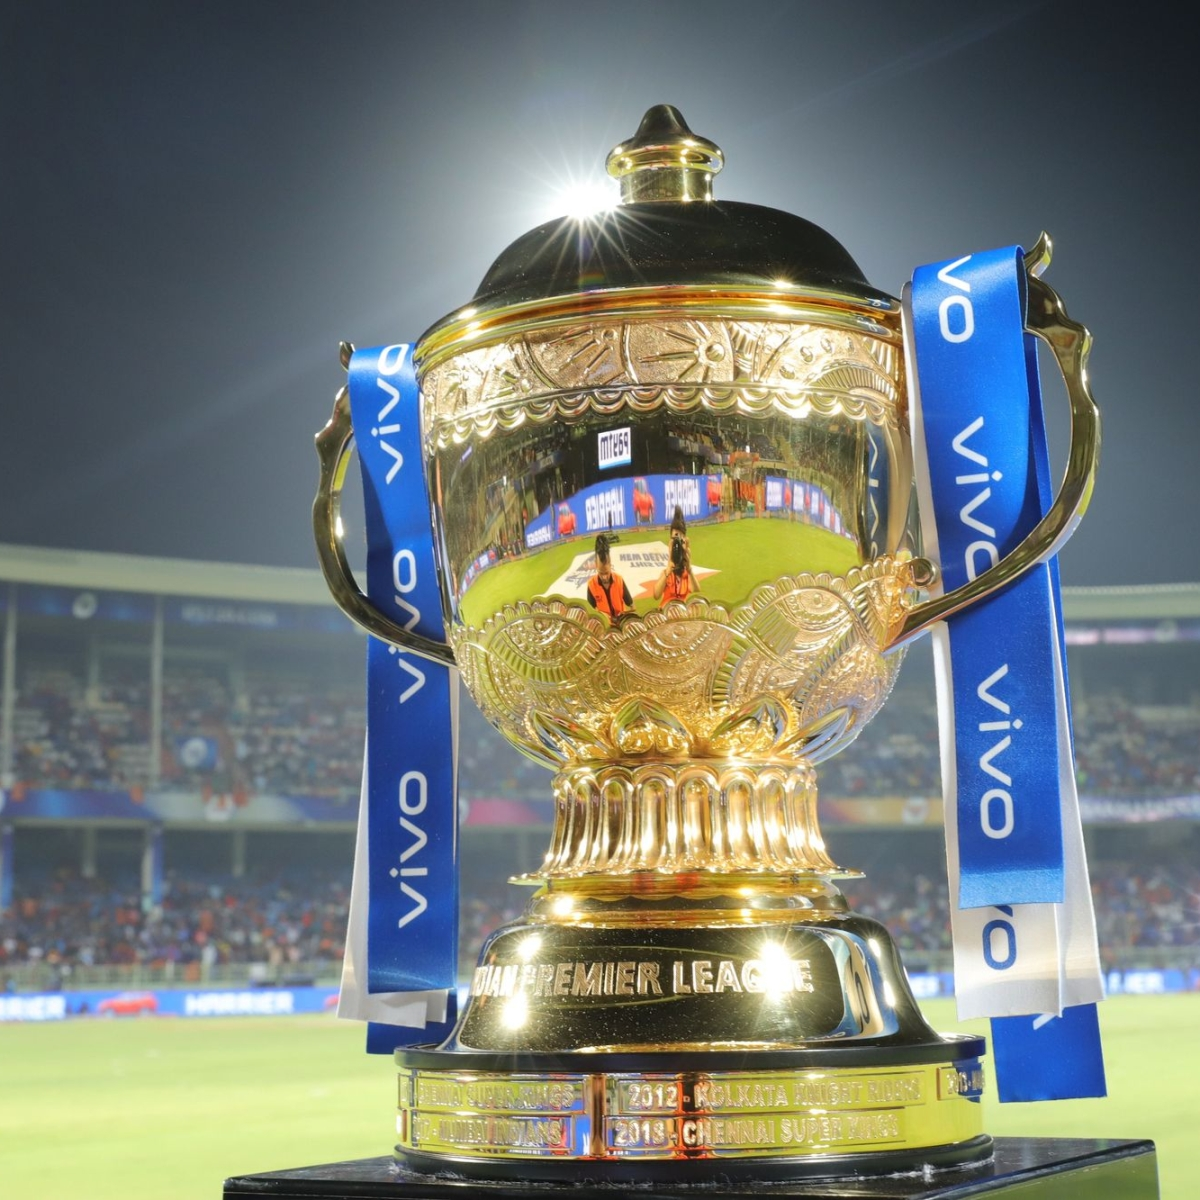 'IPL can surely wait' till millions of lives, which are at risk due to the outbreak of COVID-19